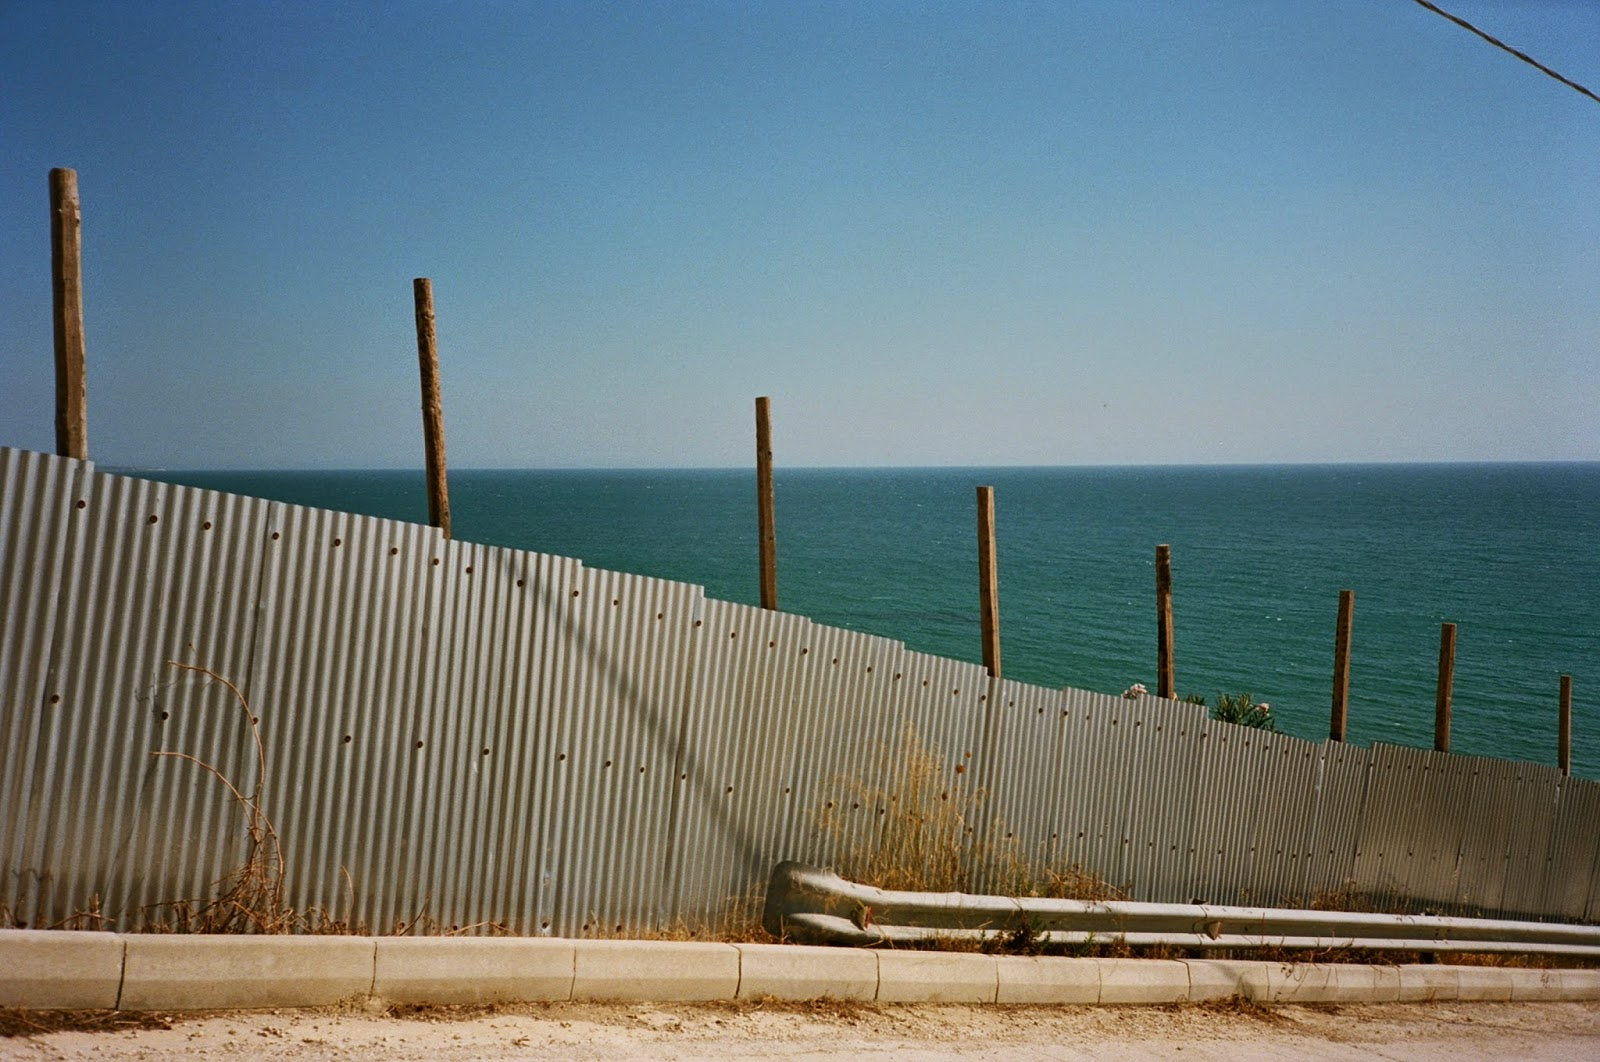 CORRUGATED SHEET METAL, BARACADE, DEVELOPMENT SITE, COASTAL VIEW IN SOUTHERN SICILY, AGRIGENTO, SCIACCA, SICILY © VAC 100 DAYS 4 MILLION CONVERSATIONS